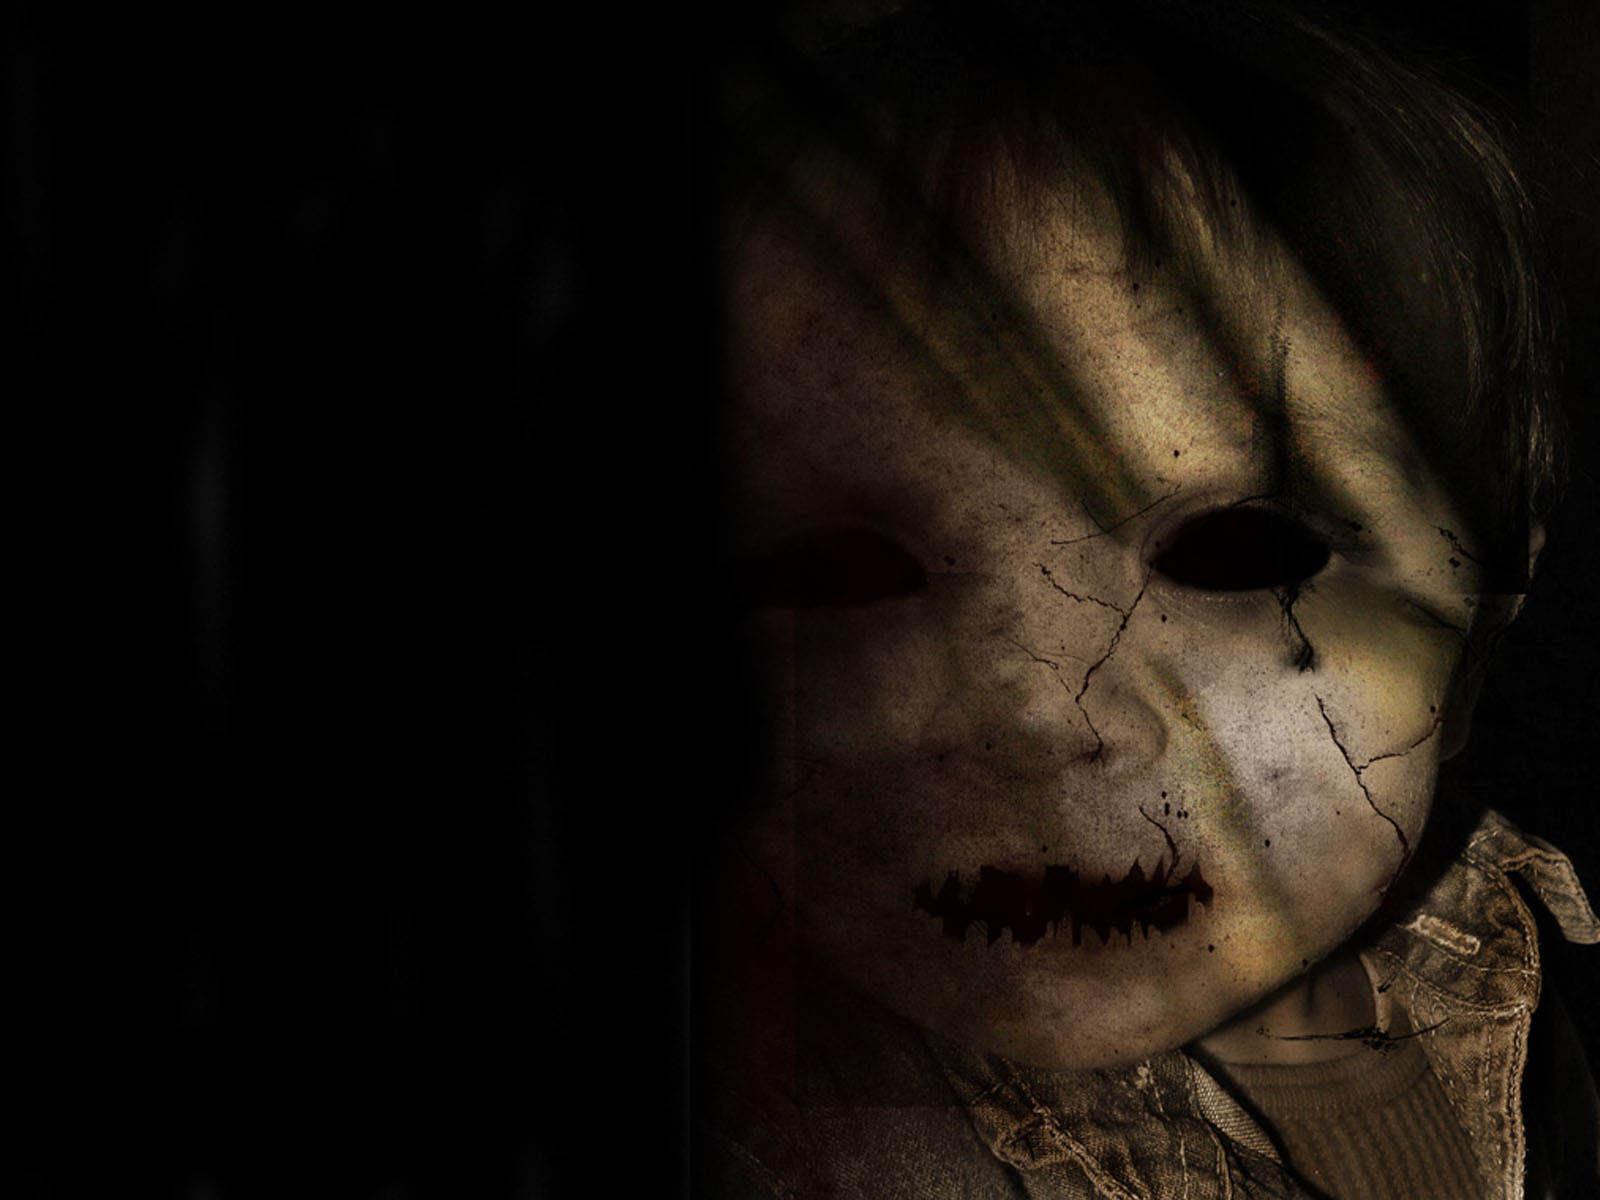 Tag scary horror wallpapers images photos pictures and backgrounds